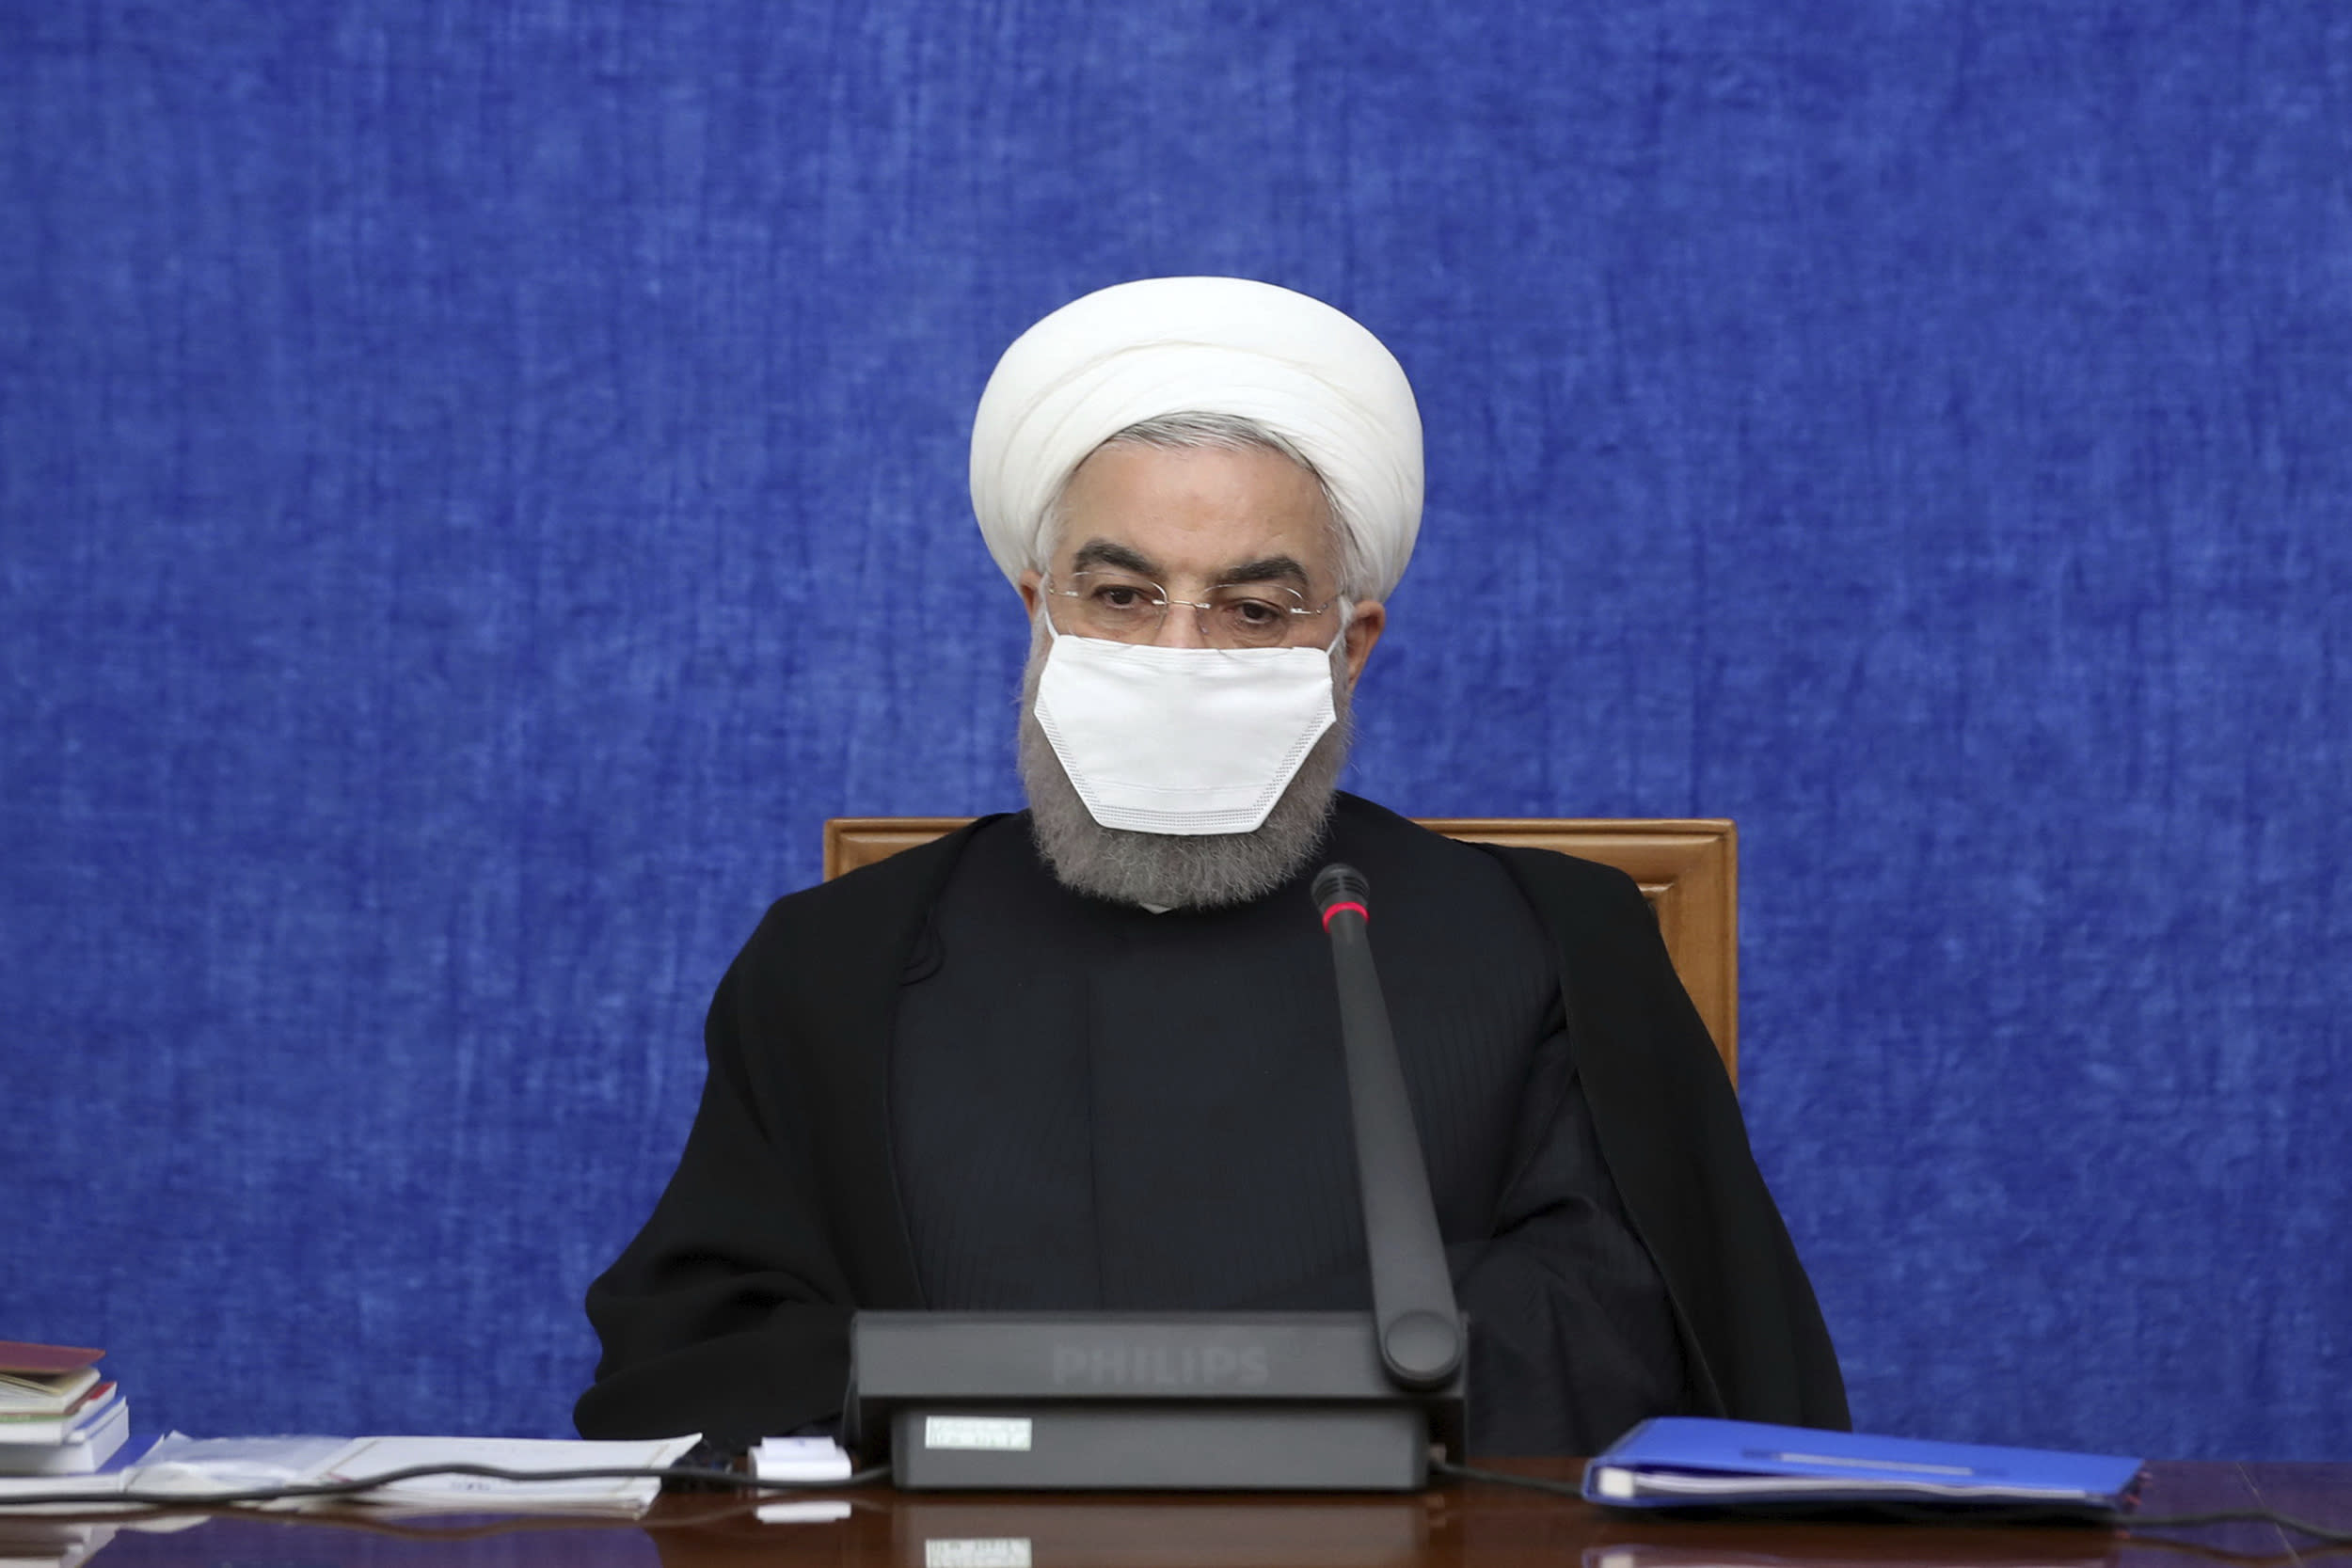 """In this Oct. 13, 2020, photo, released by the official website of the office of the Iranian Presidency, President Hassan Rouhani wearing a protective face mask to help prevent spread of the coronavirus attends a meeting in Tehran, Iran. Iran is confronting a new surge of infections that is filling hospitals and cemeteries alike. Weeks after Rouhani called in-person instruction at schools """"our first priority,"""" the government shut the newly resumed schools and universities in the capital. (Office of the Iranian Presidency via AP)"""